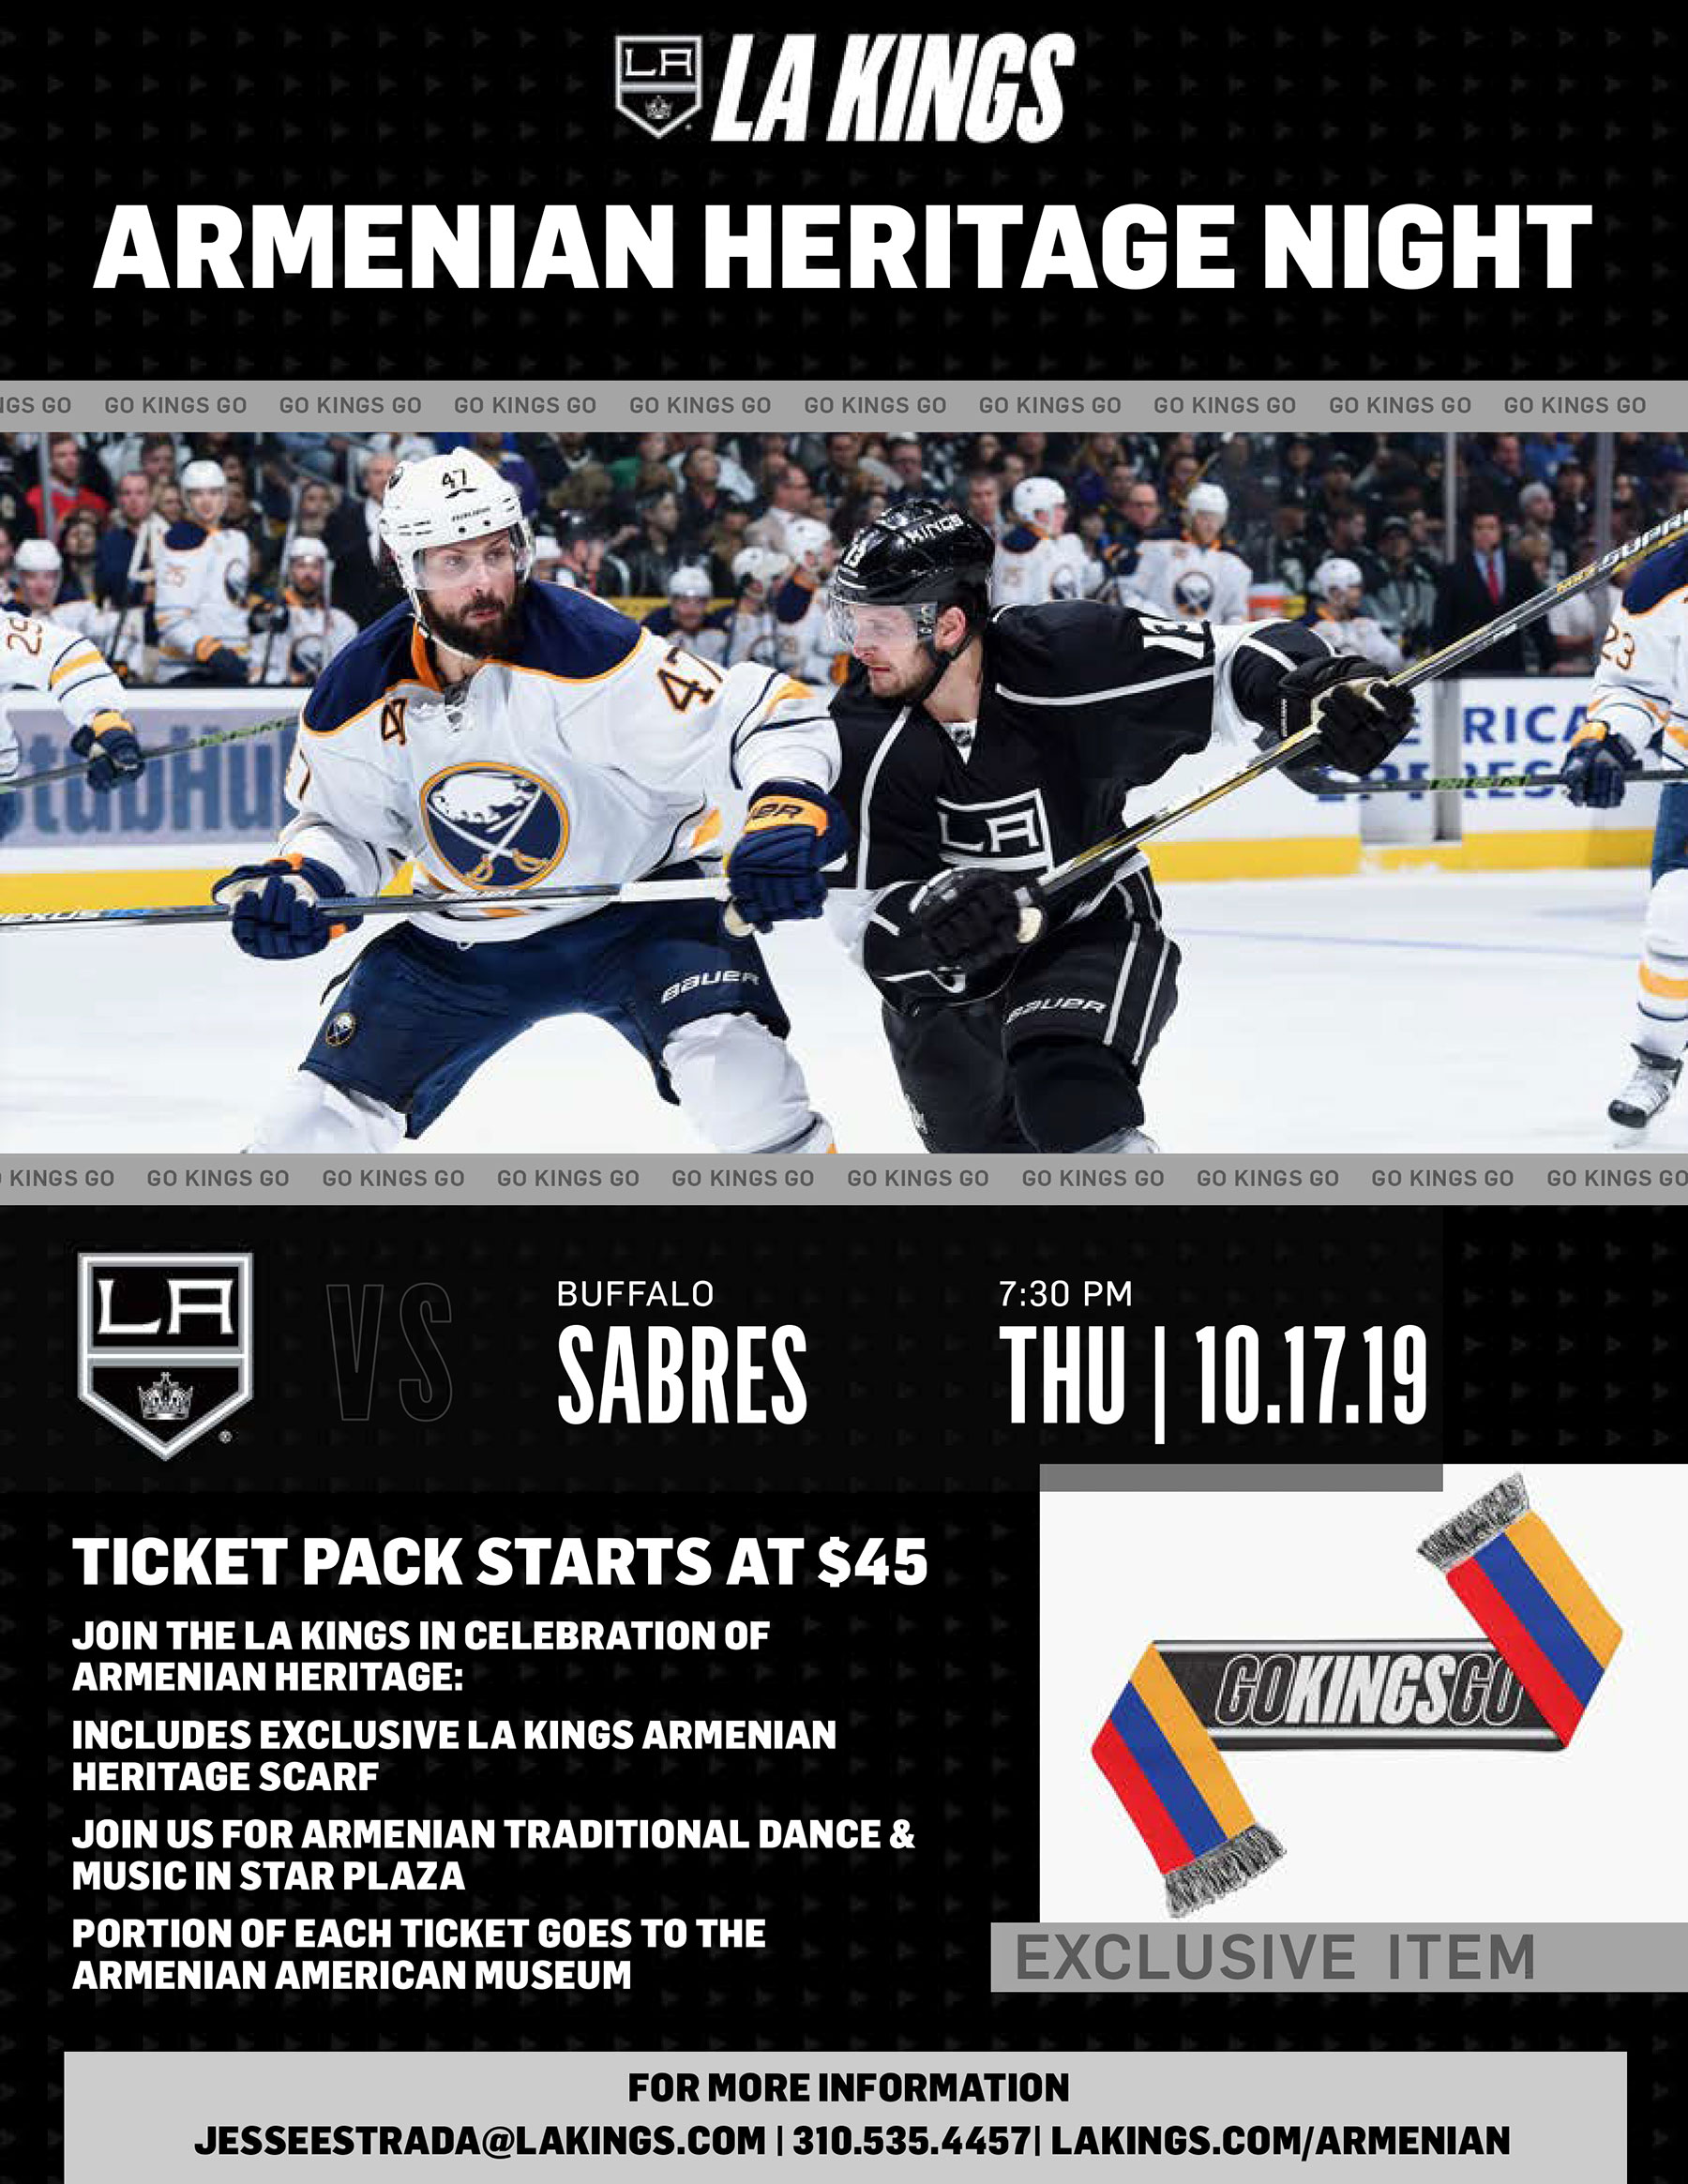 LA Kings Armenian Heritage Night Benefiting Armenian American Museum